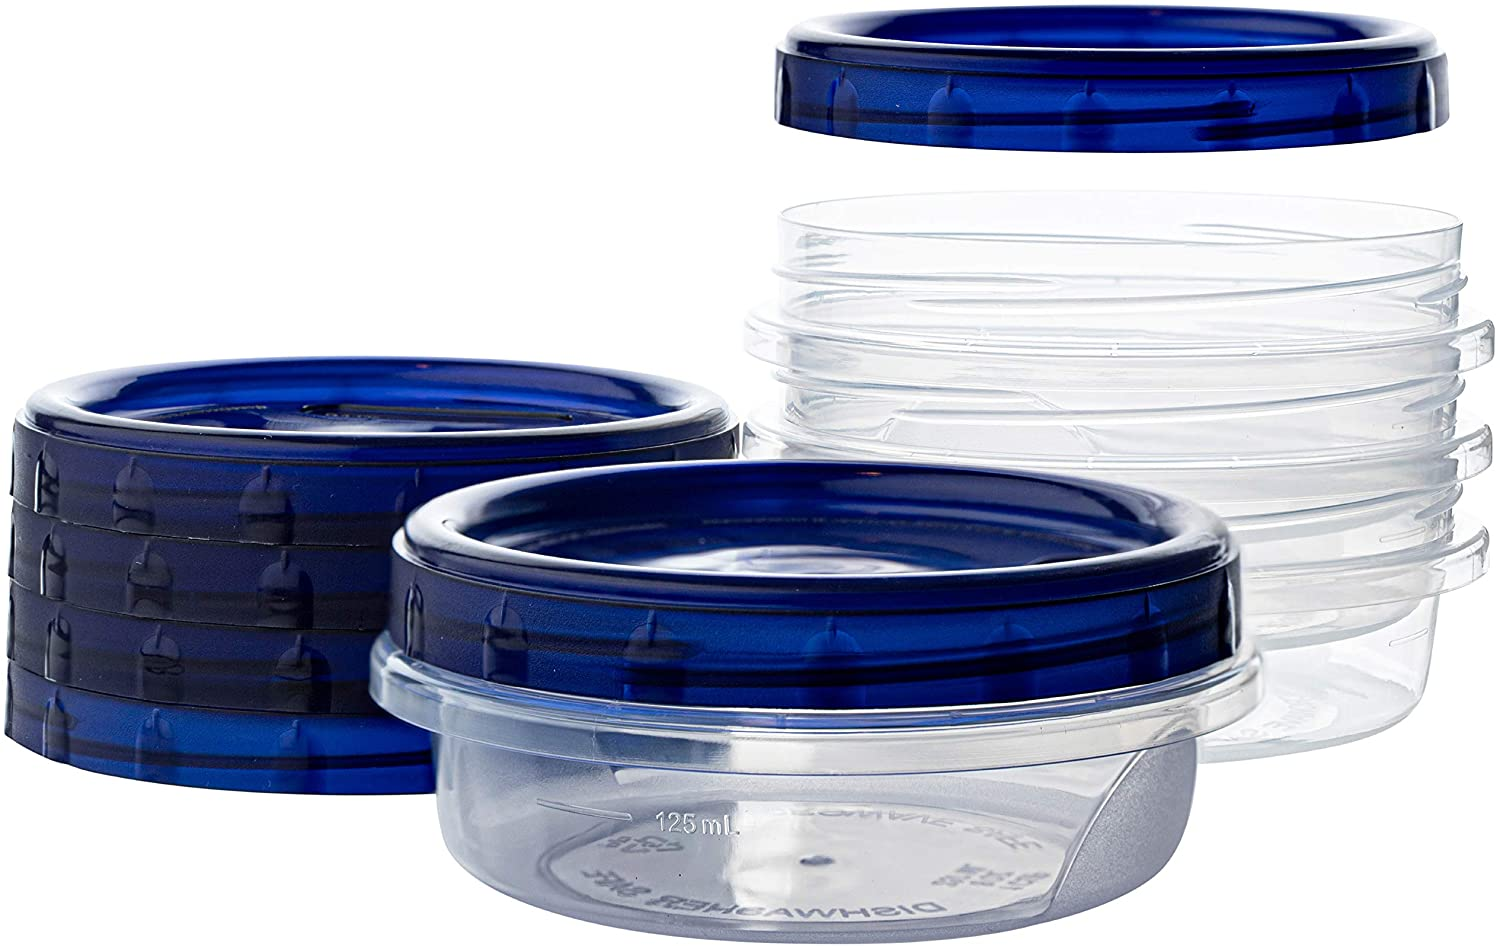 [8 oz 4 Pack] Twist Top Deli Containers Clear bottom With blue Top Twist on Lids Reusable, Stackable, Food Storage Freezer Container